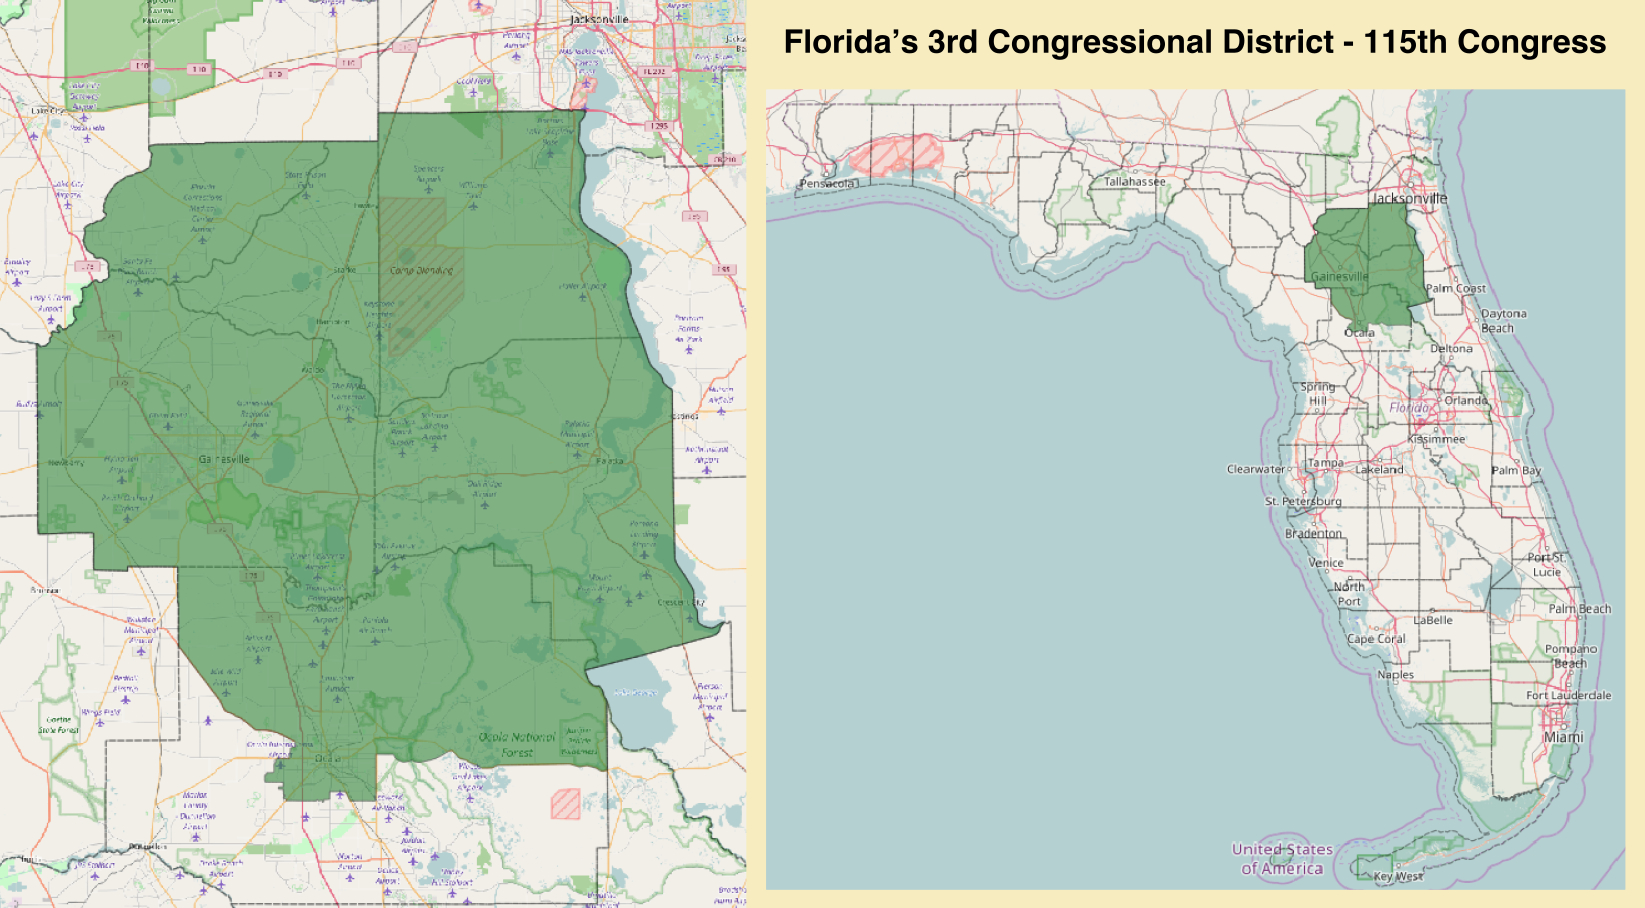 Florida's 3Rd Congressional District - Wikipedia - Florida 6Th Congressional District Map